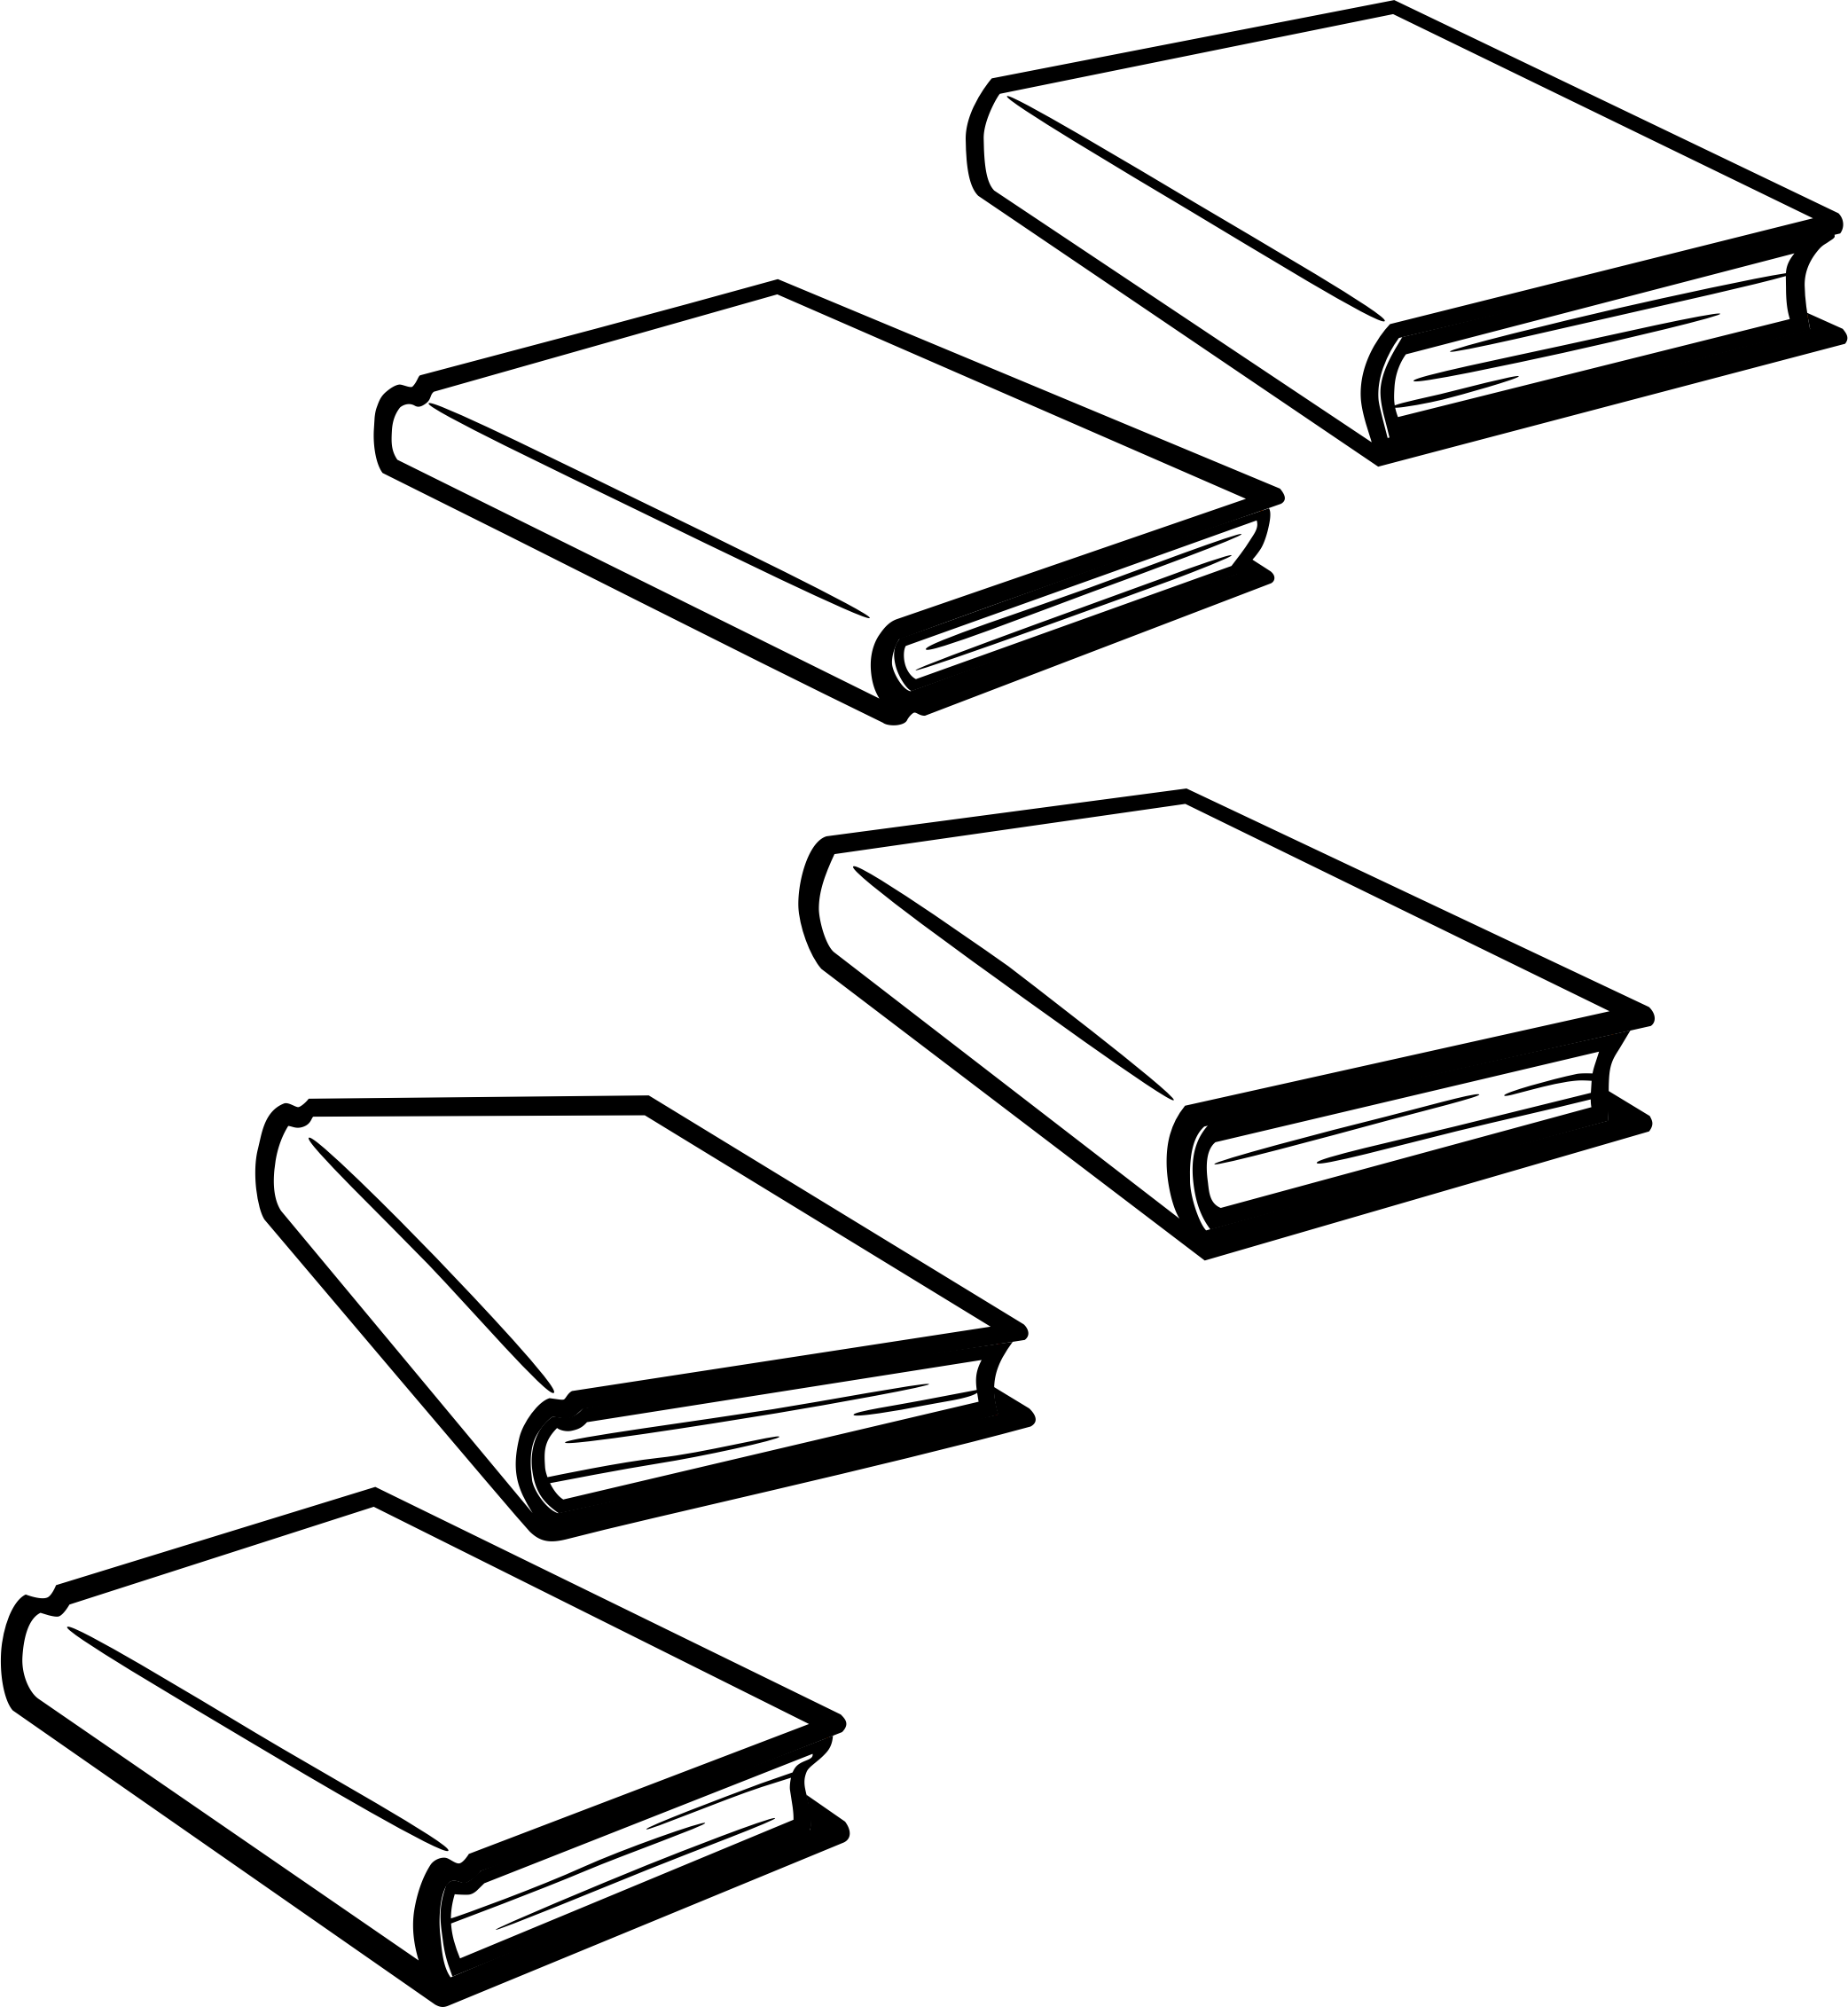 Books - Lineart - Separated by amcolley